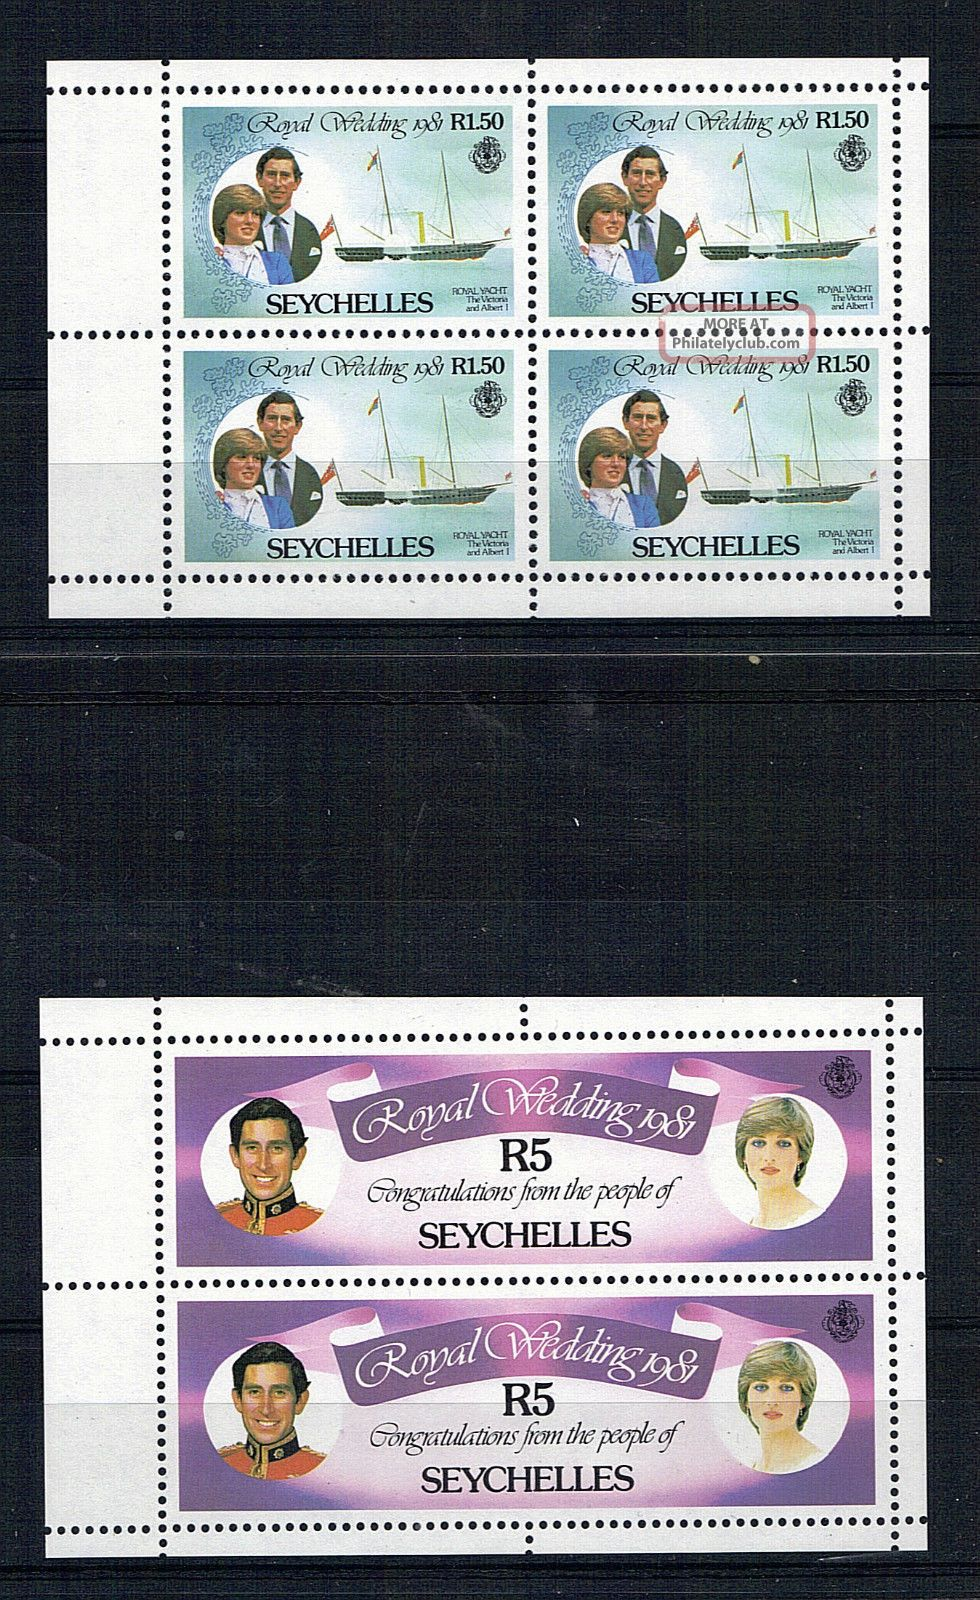 Seychelles 1981 Royal Wedding Booklet Pair Full Panes Africa photo